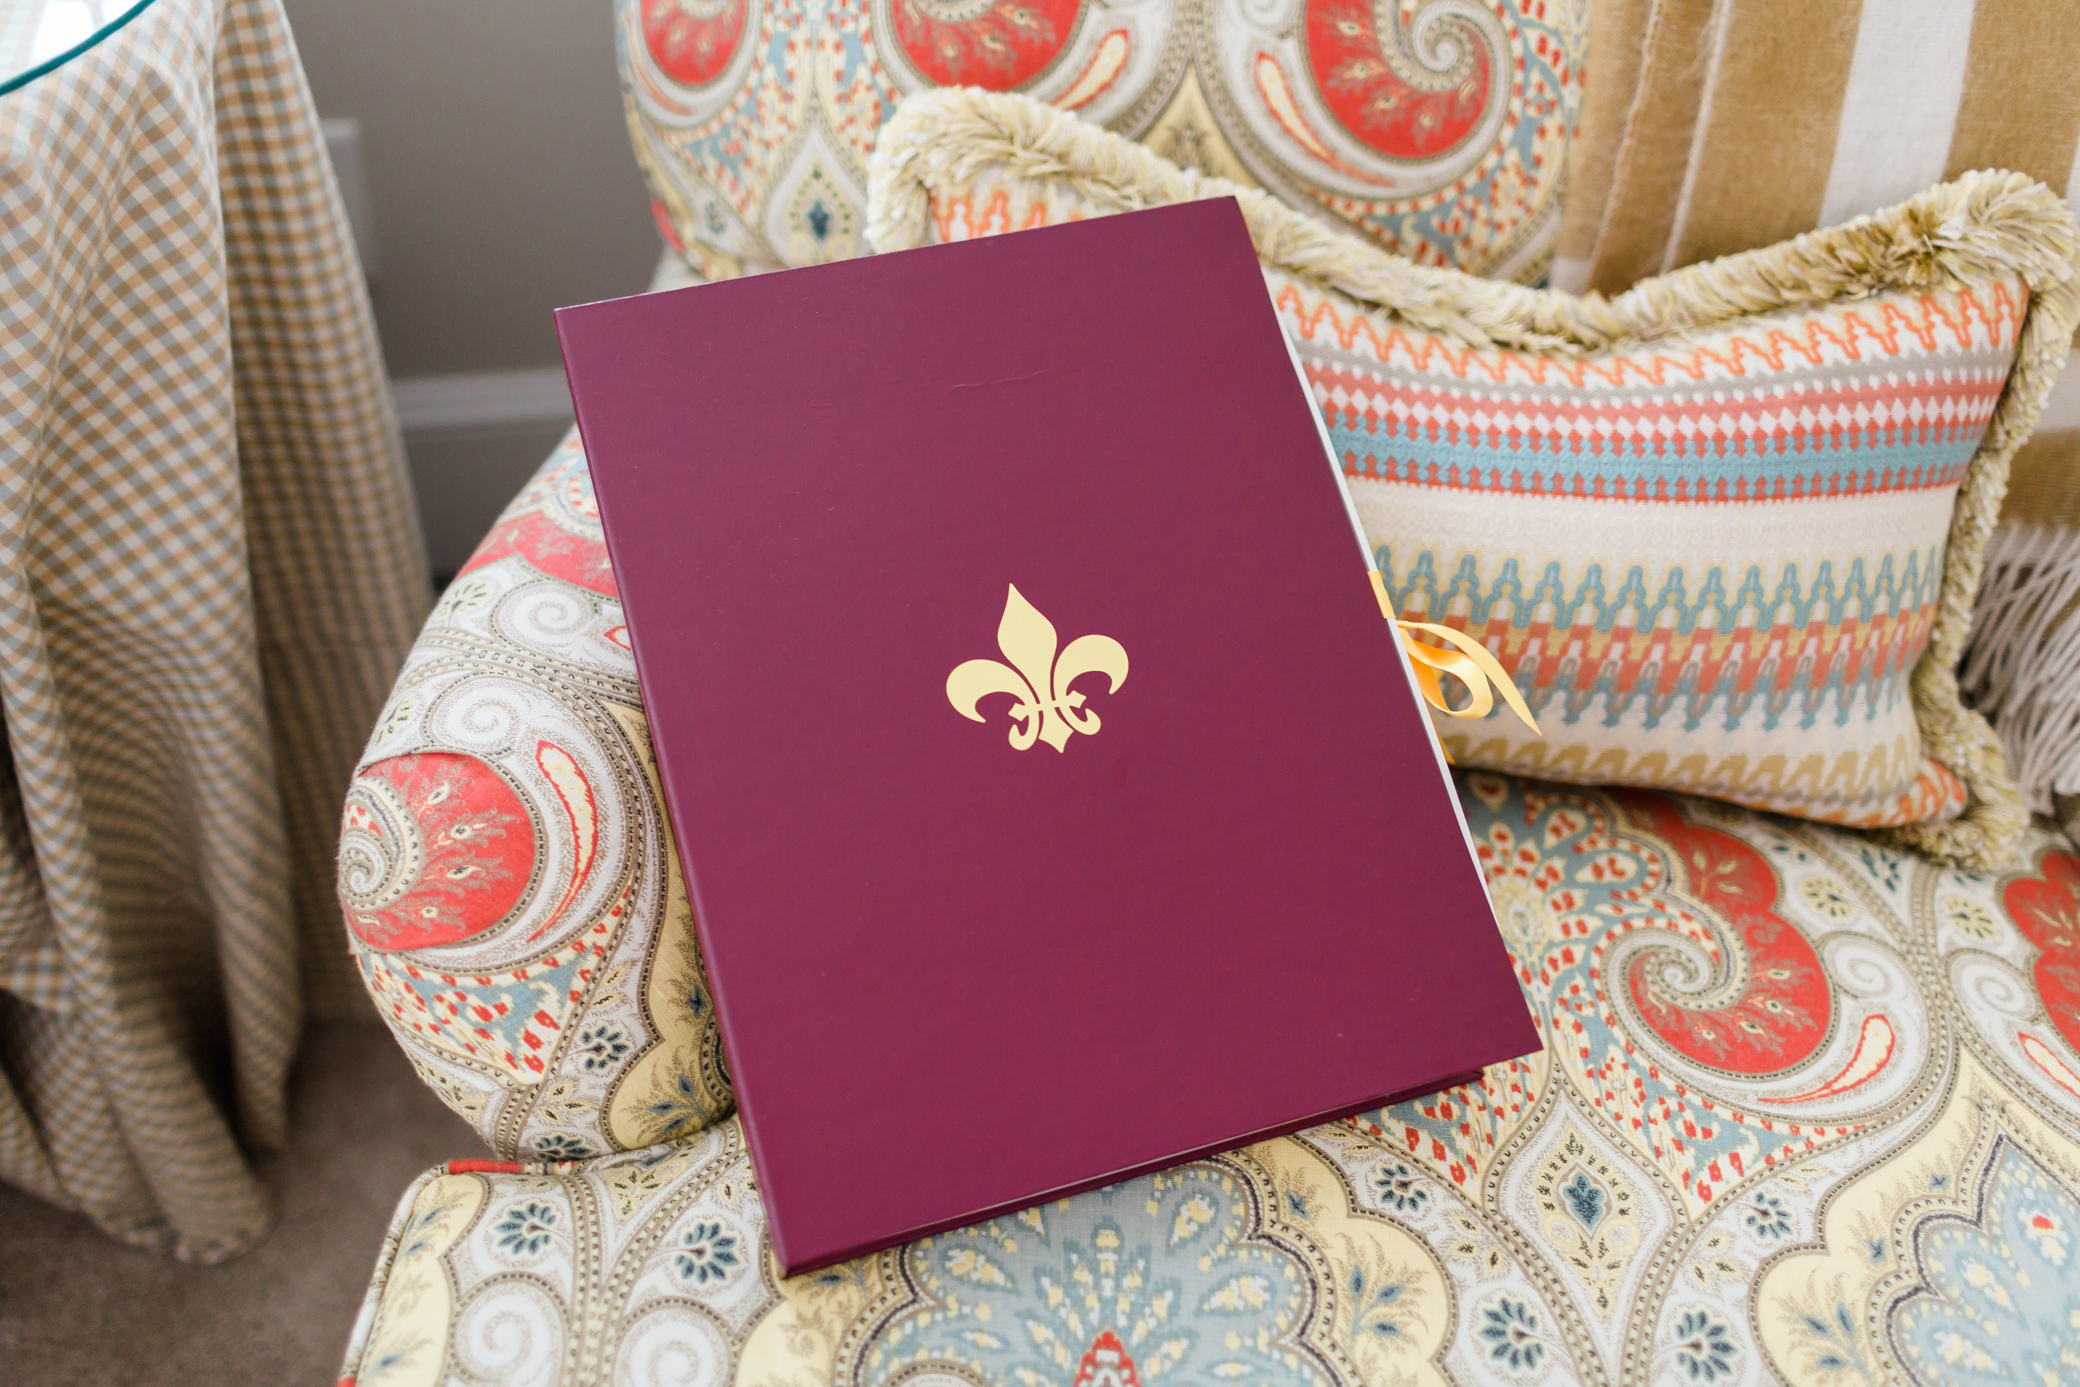 Beautiful Italian journal - a keepsake for the family! (Epica journals)